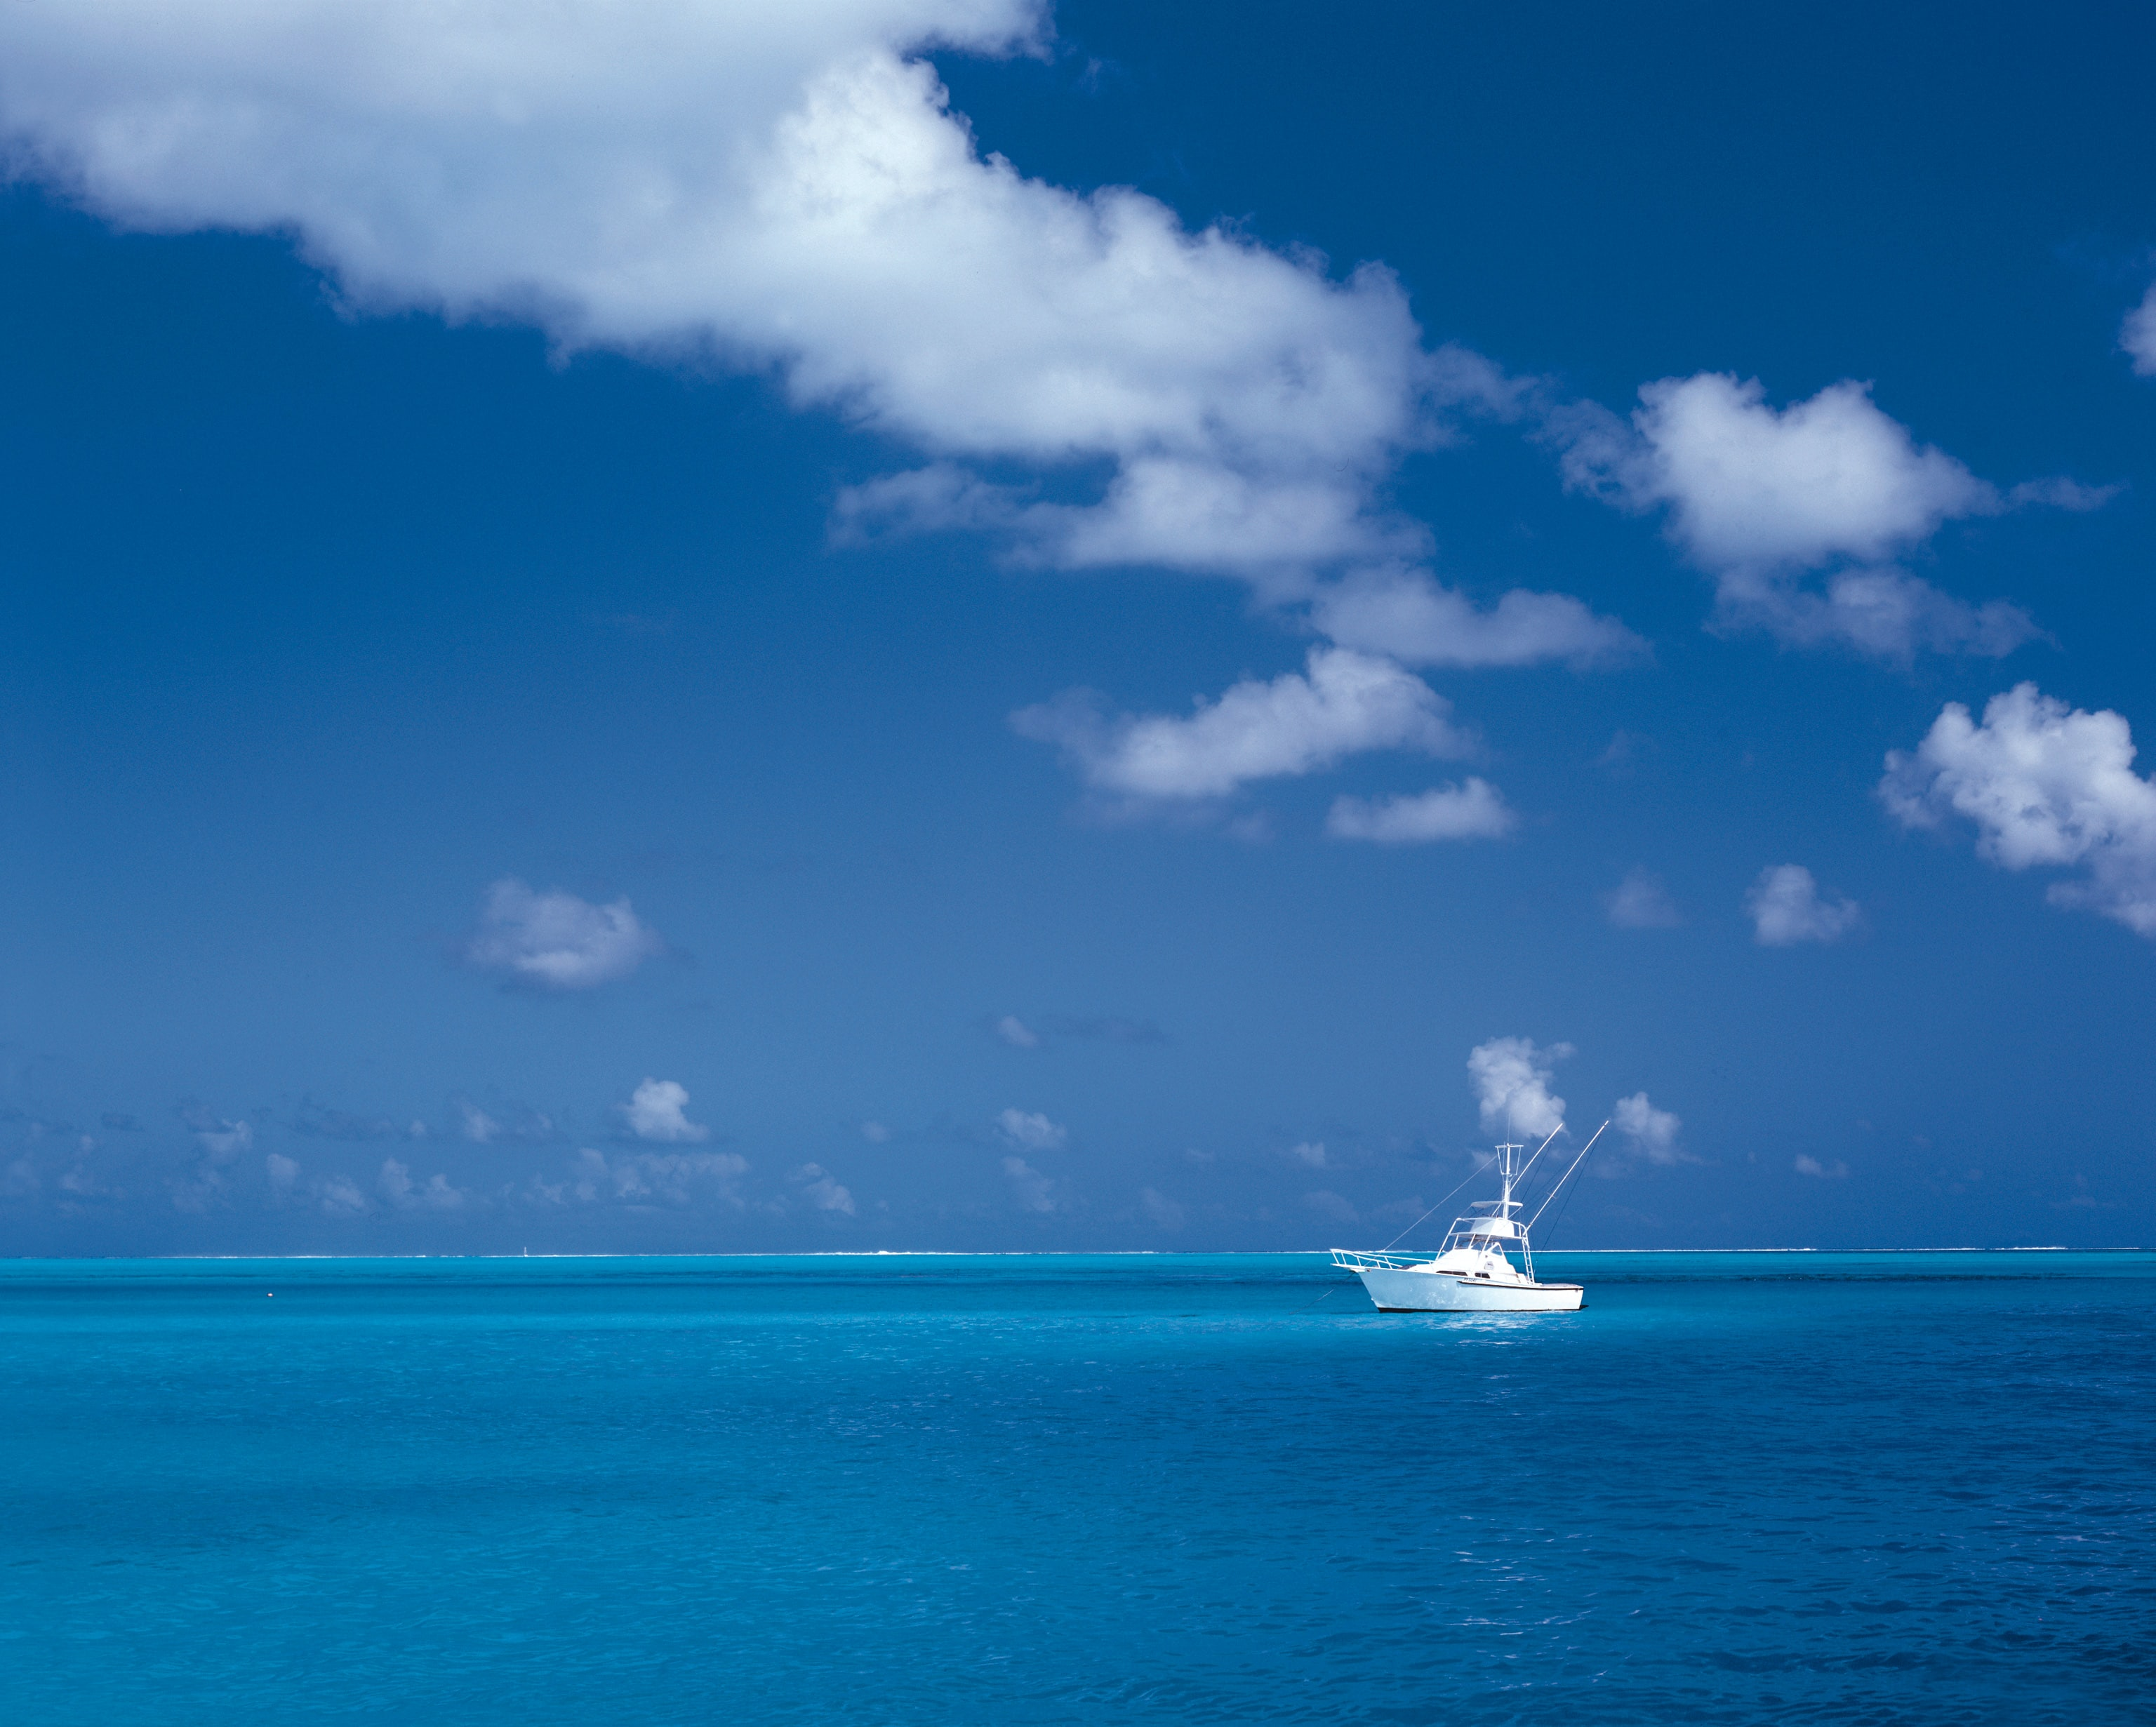 white boat on sea under cloudy sky